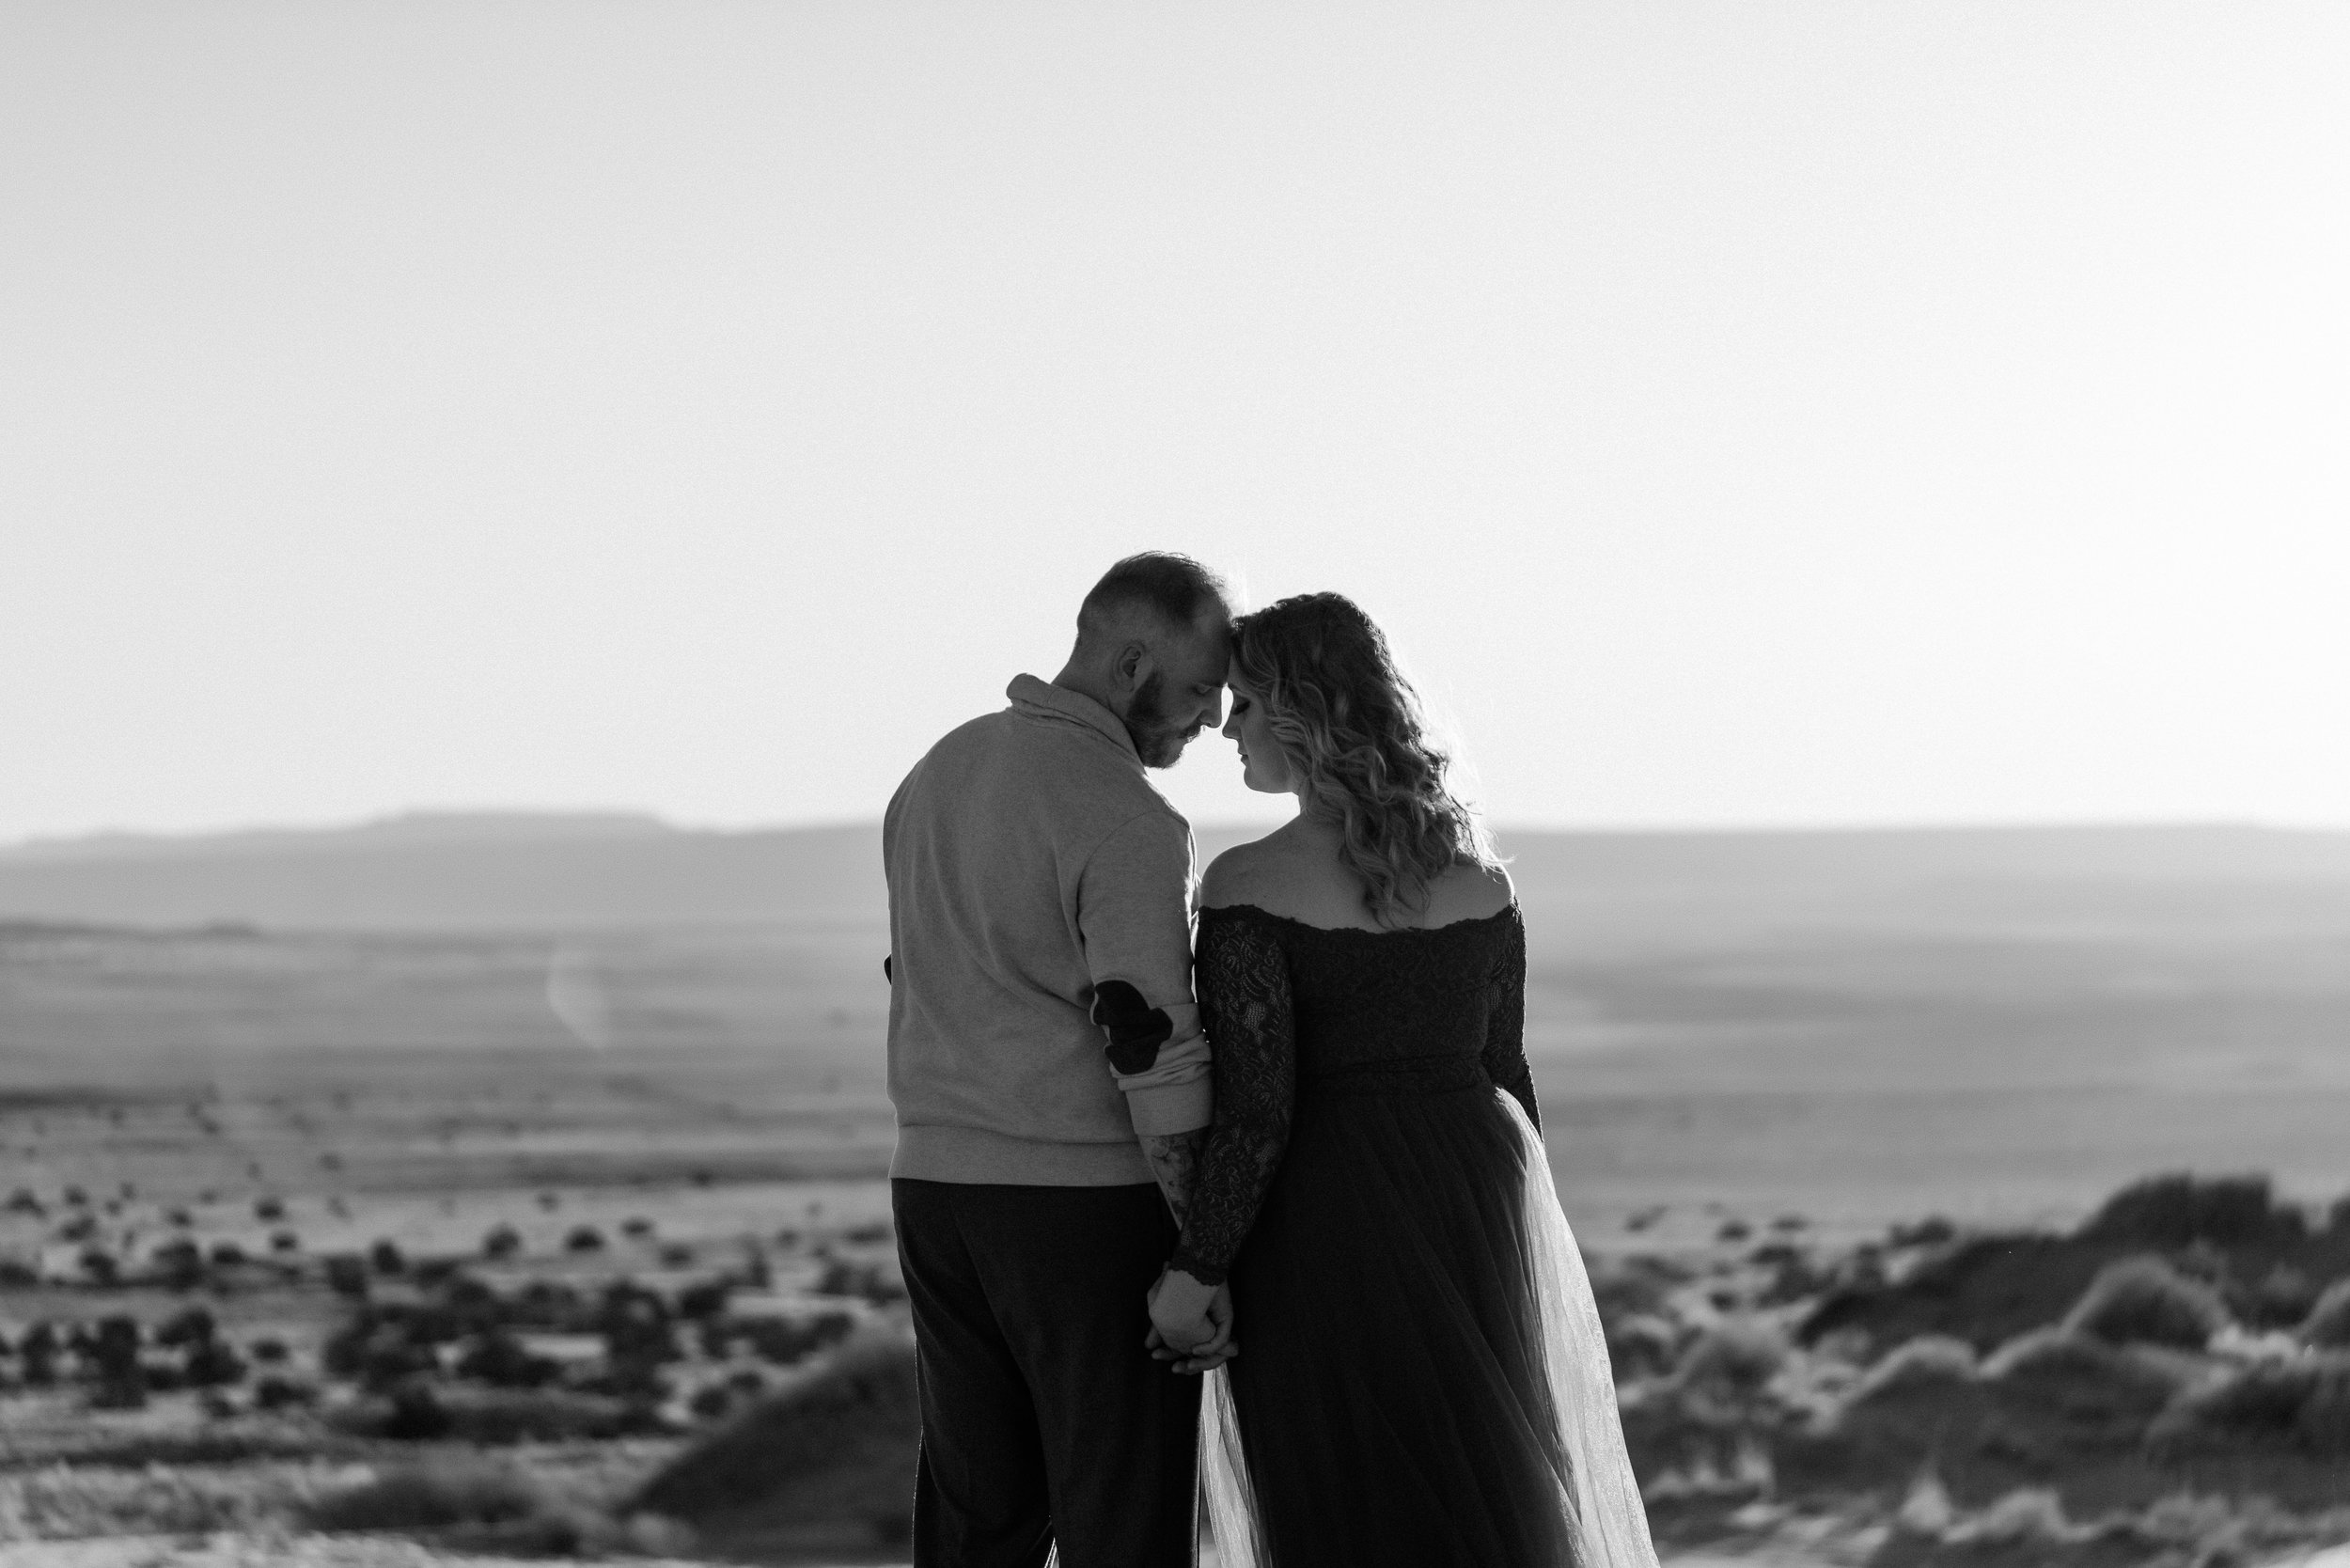 NewMexico-Sand-Dunes-Engagement-Carissa-and-Ben-1162.jpg